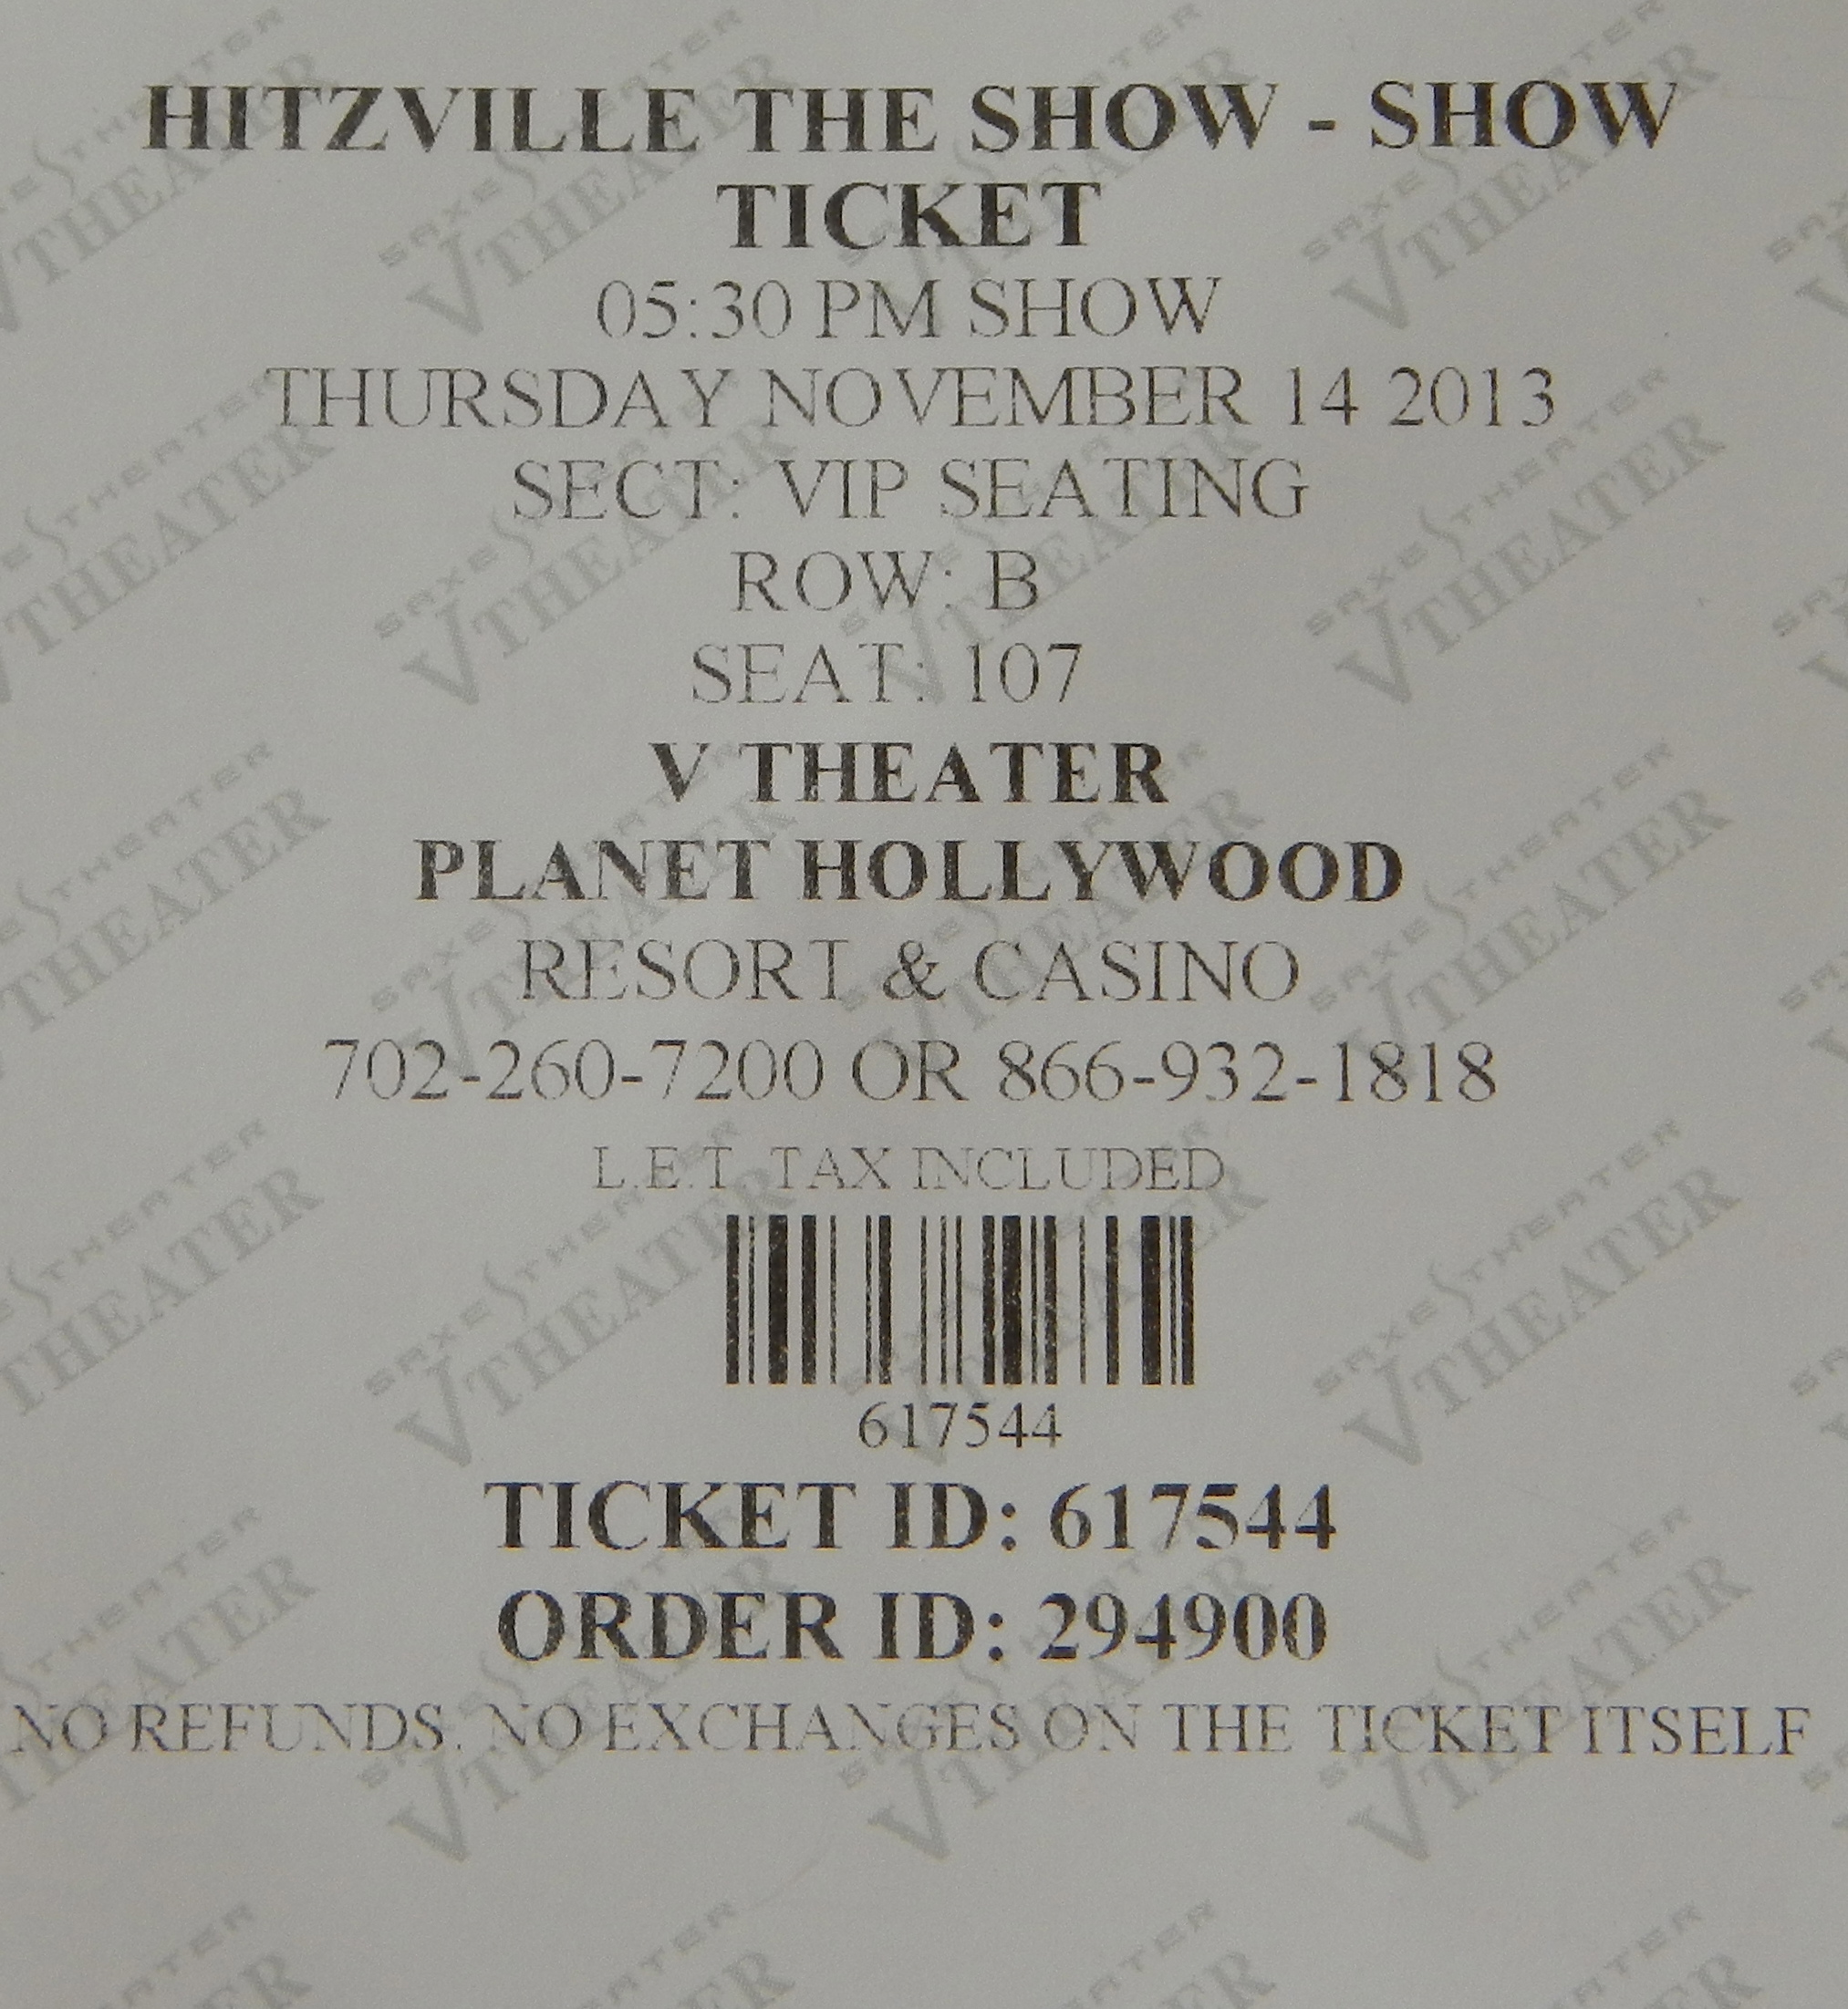 Hitzville Show Ticket